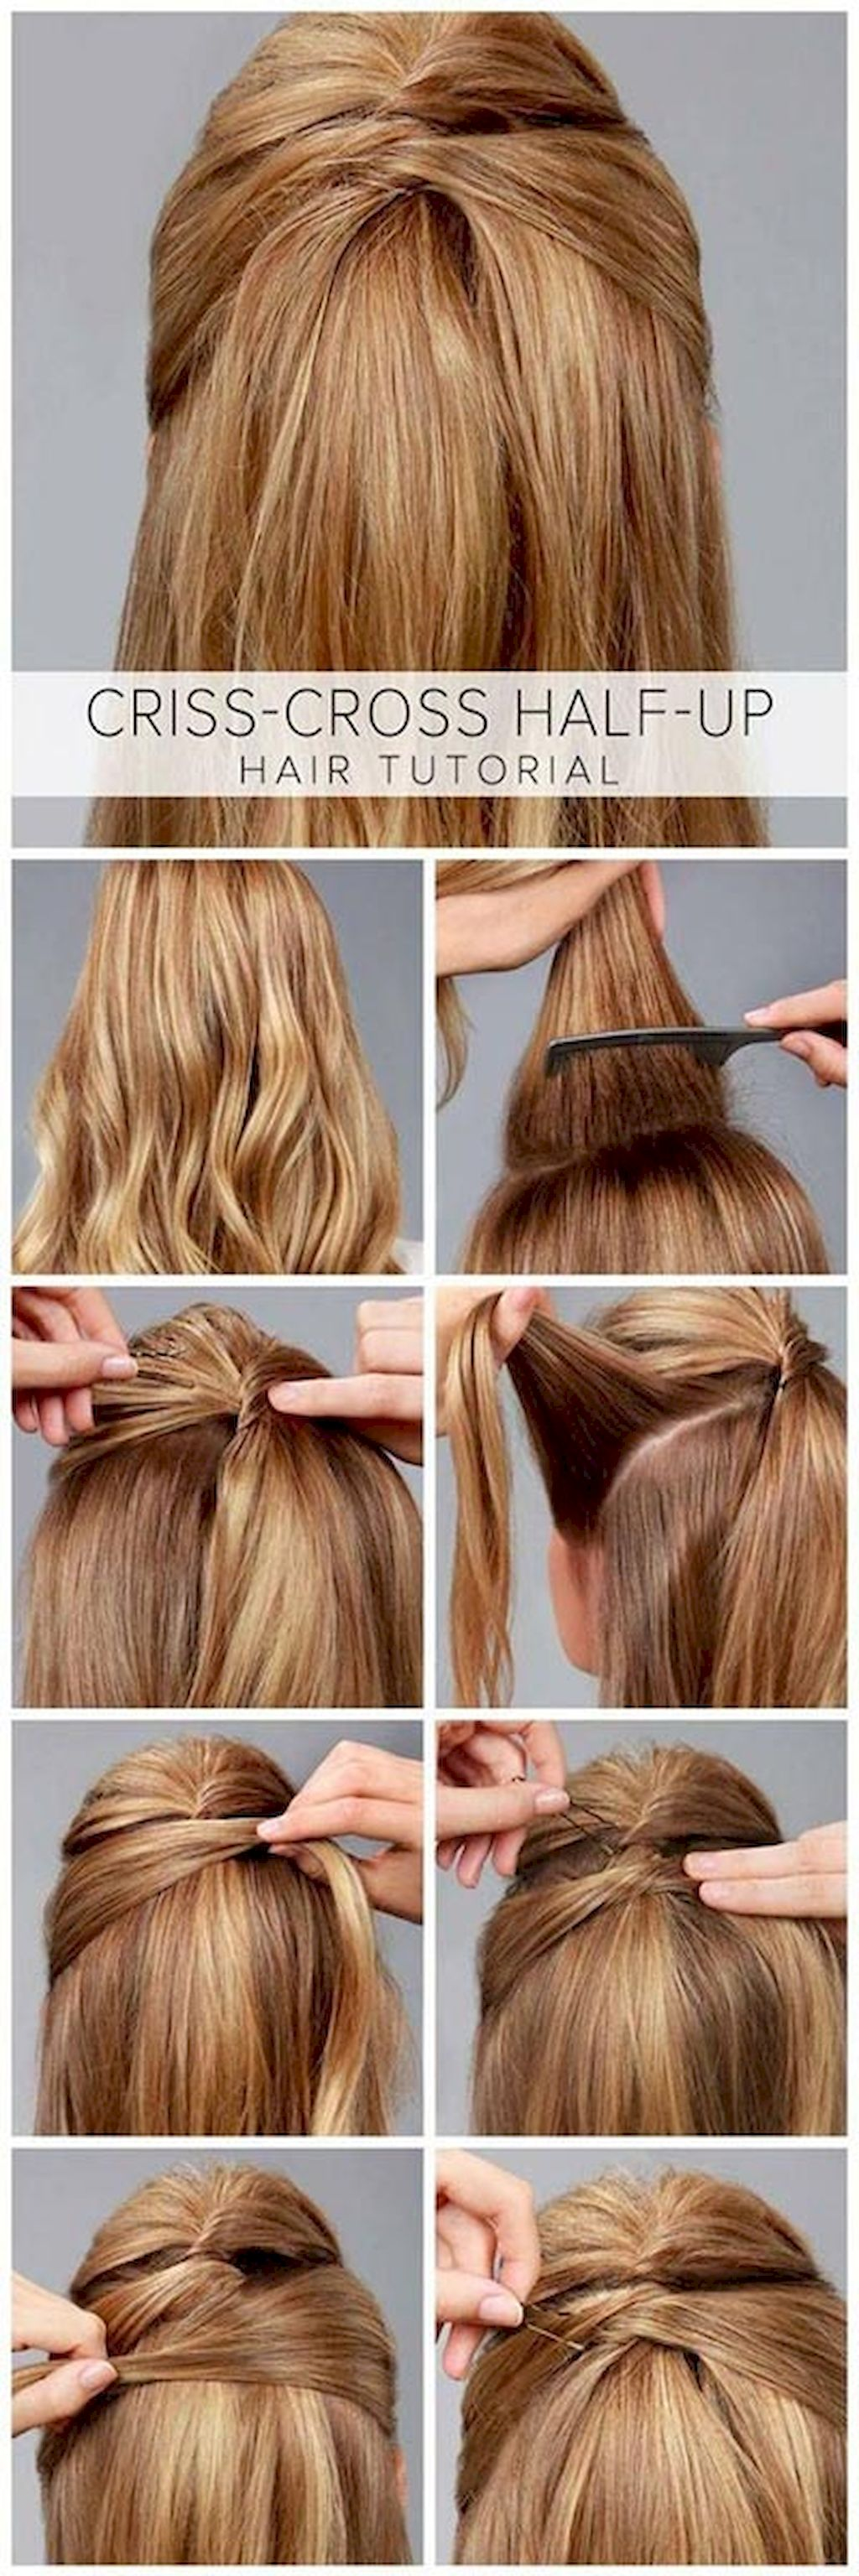 Discussion on this topic: Weekend Hairstyles For EveryOccasion, weekend-hairstyles-for-everyoccasion/